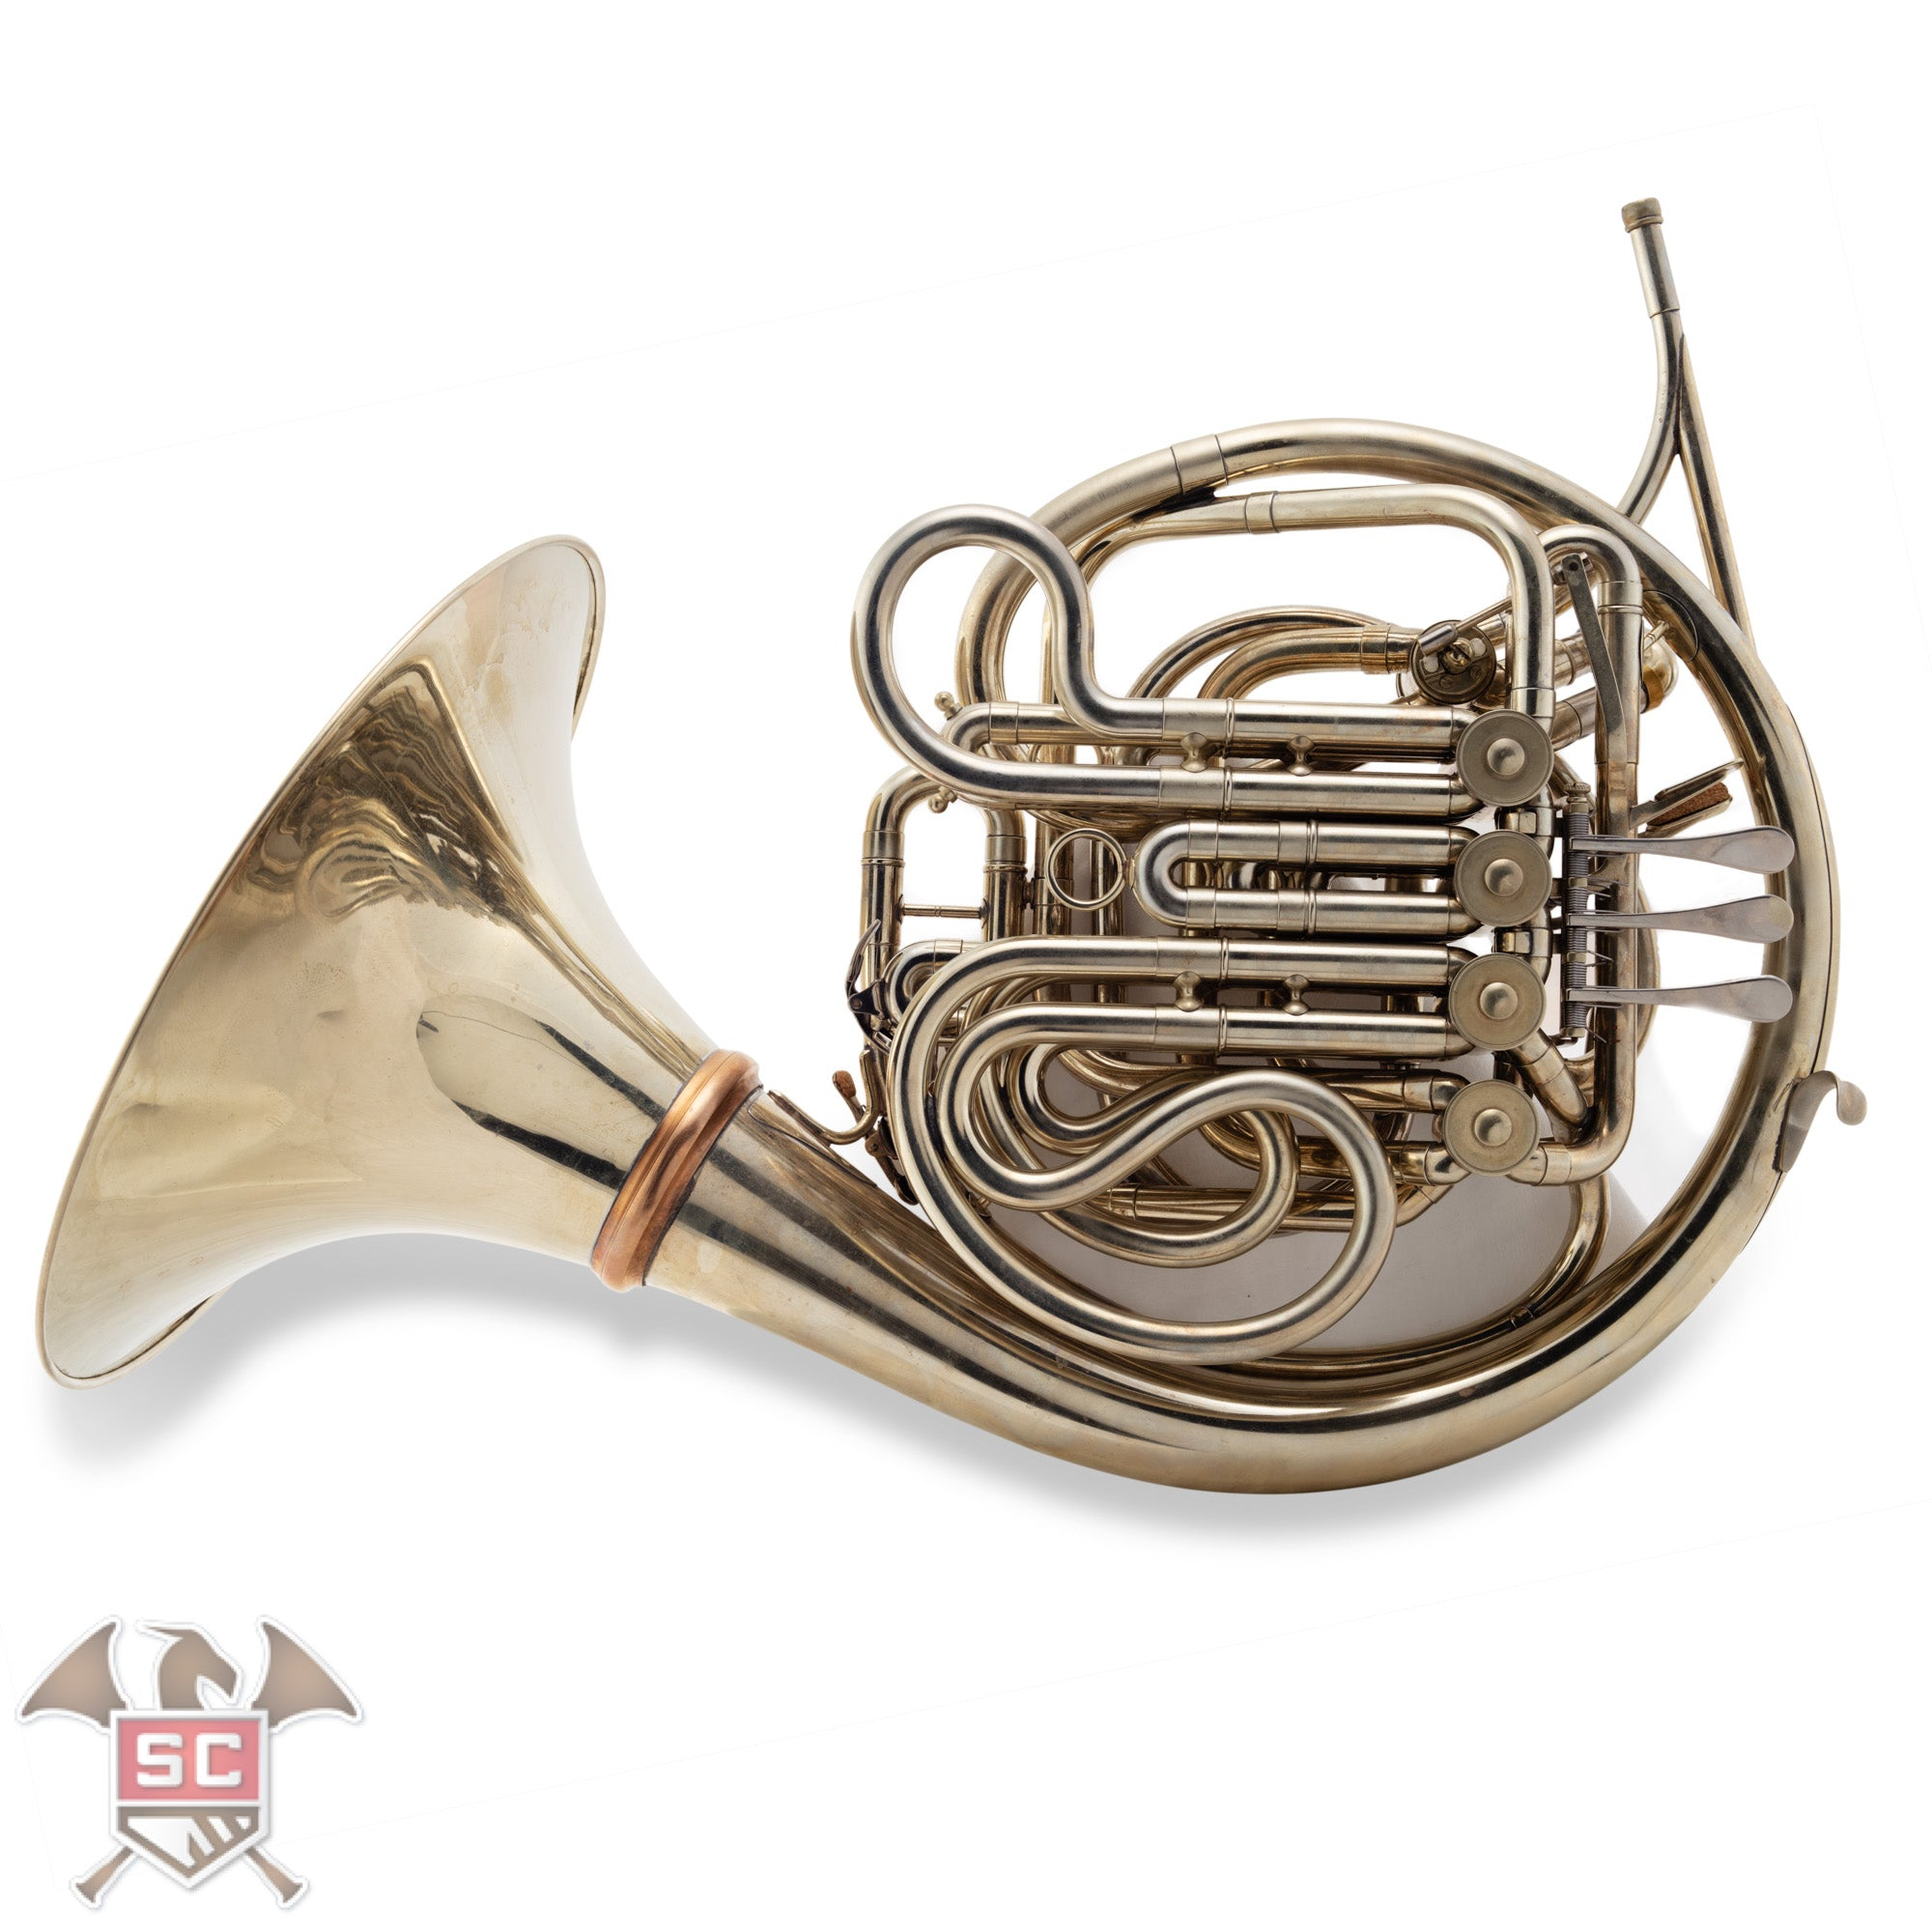 Used Paxman Triple french horn